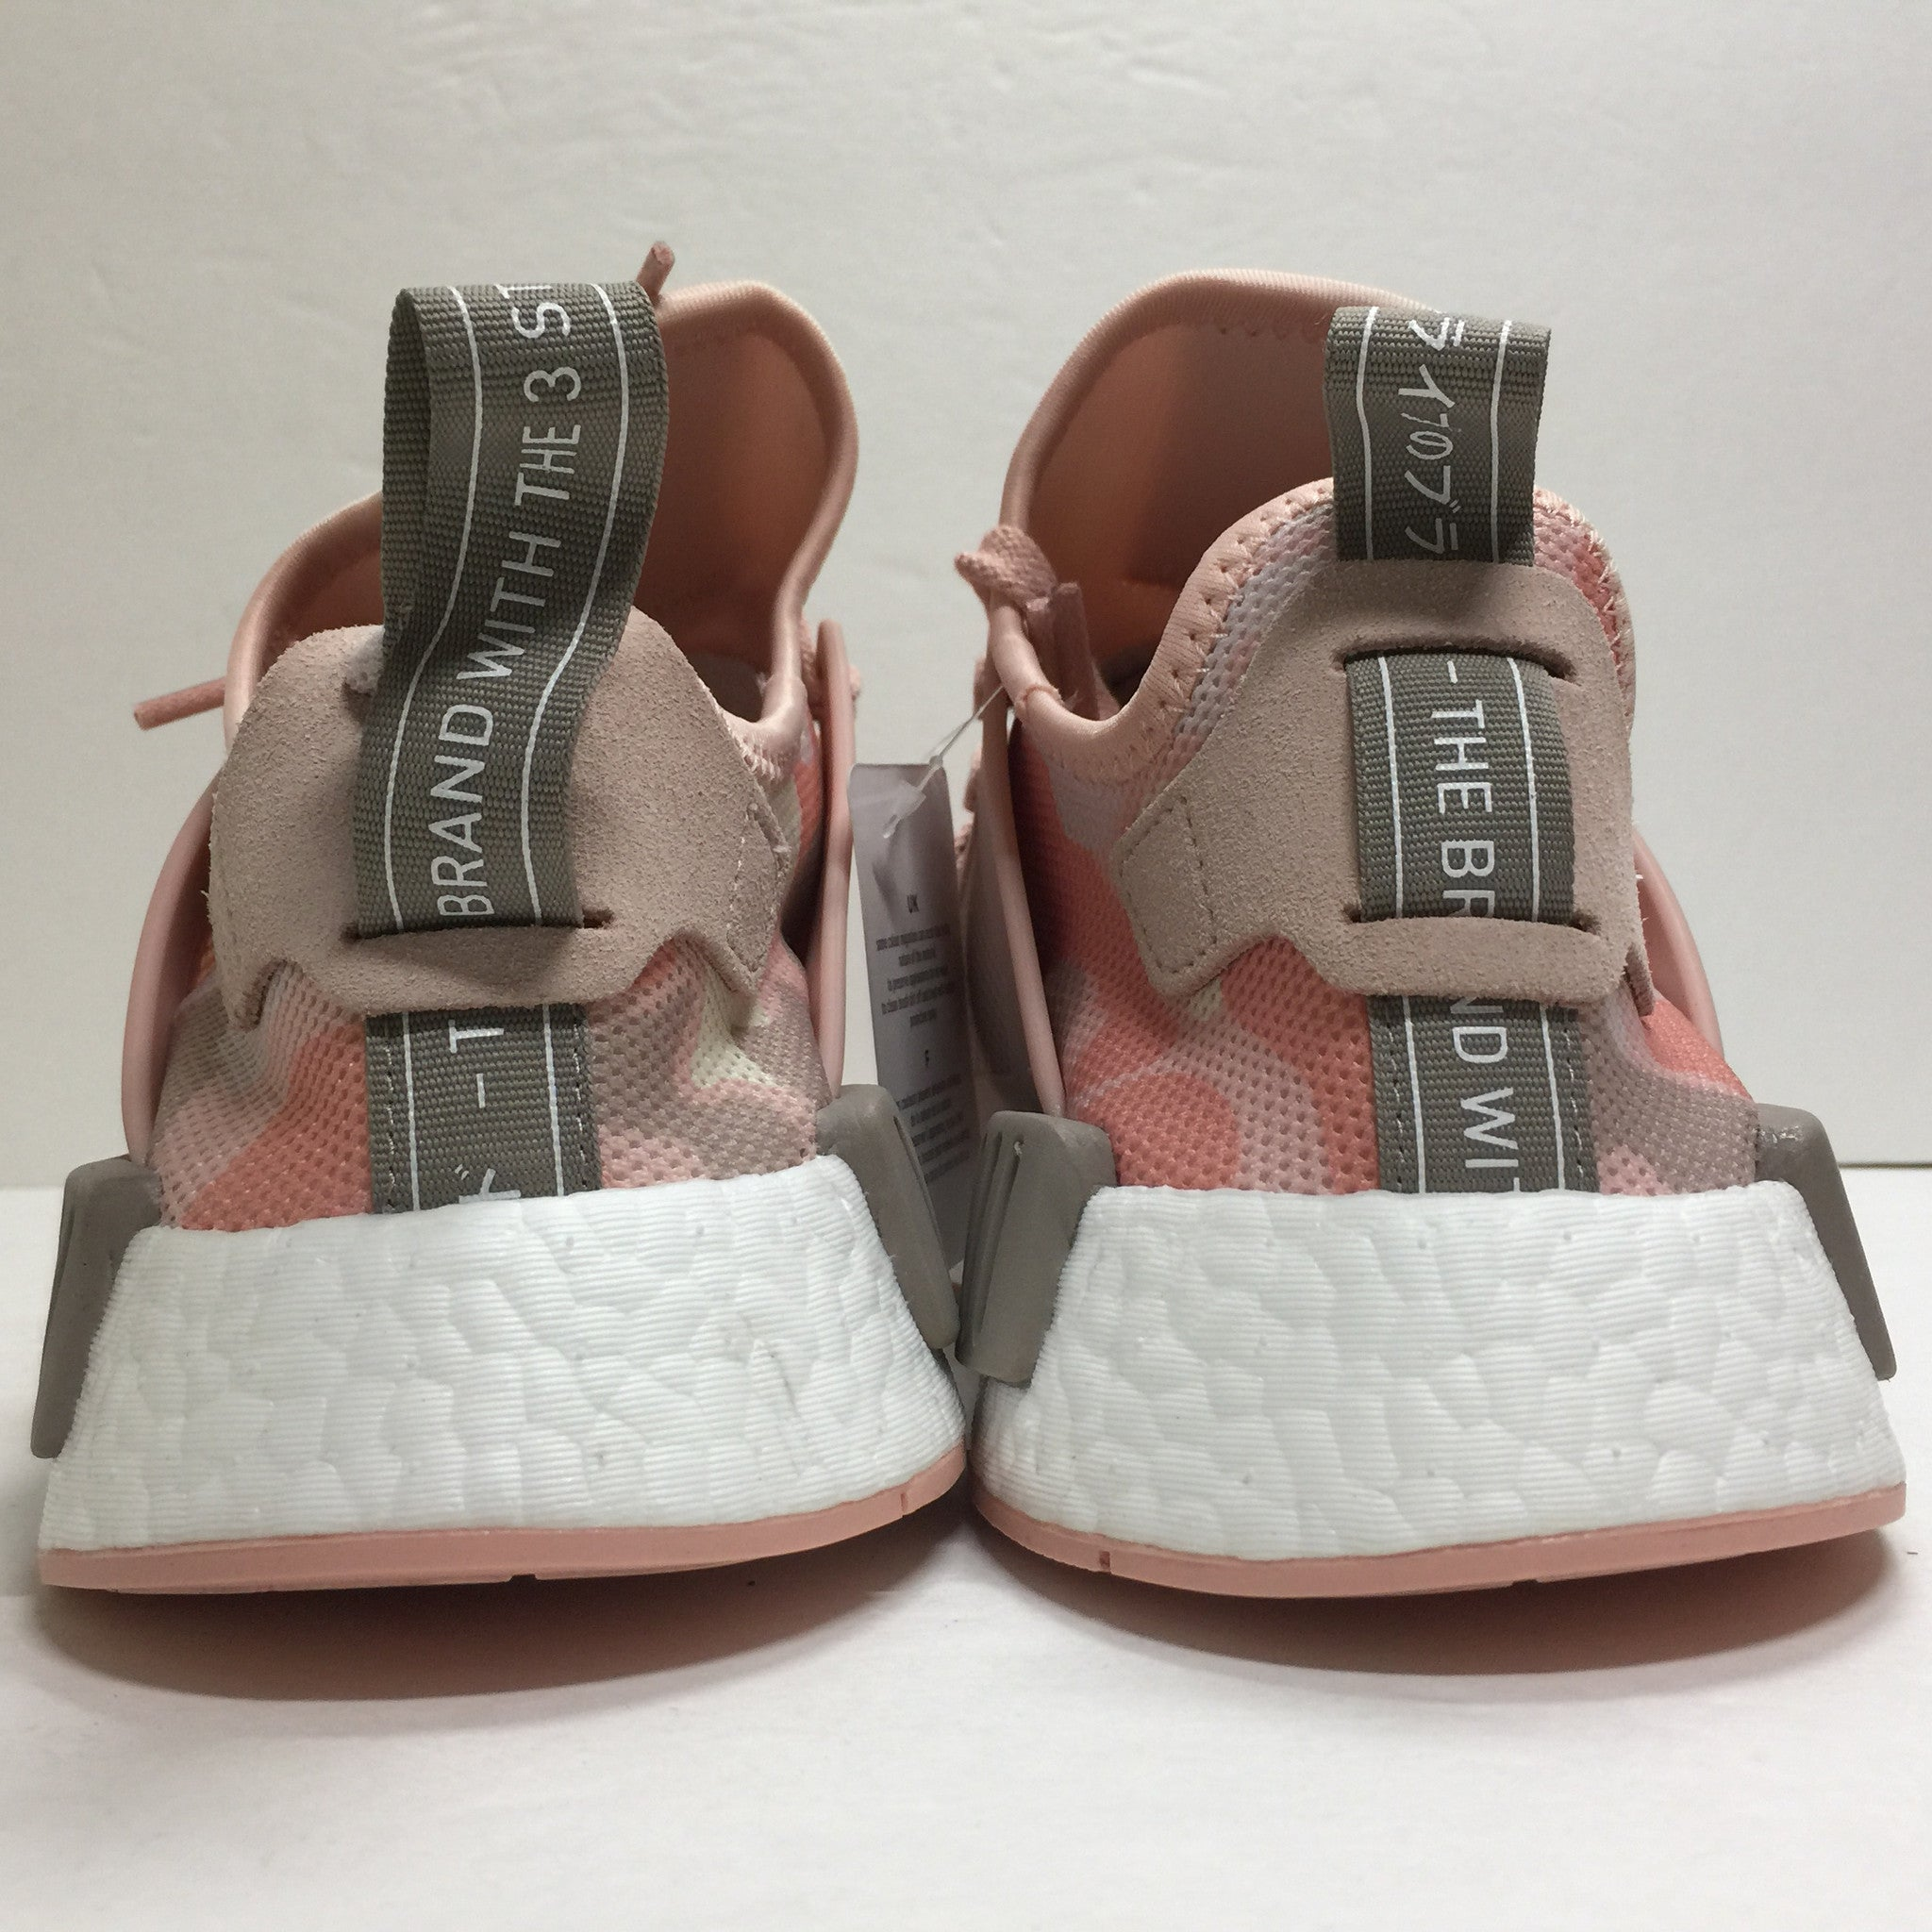 DS Adidas NMD XR1 W Pink Camo Size 7/Size 8.5 - DOPEFOOT  - 6